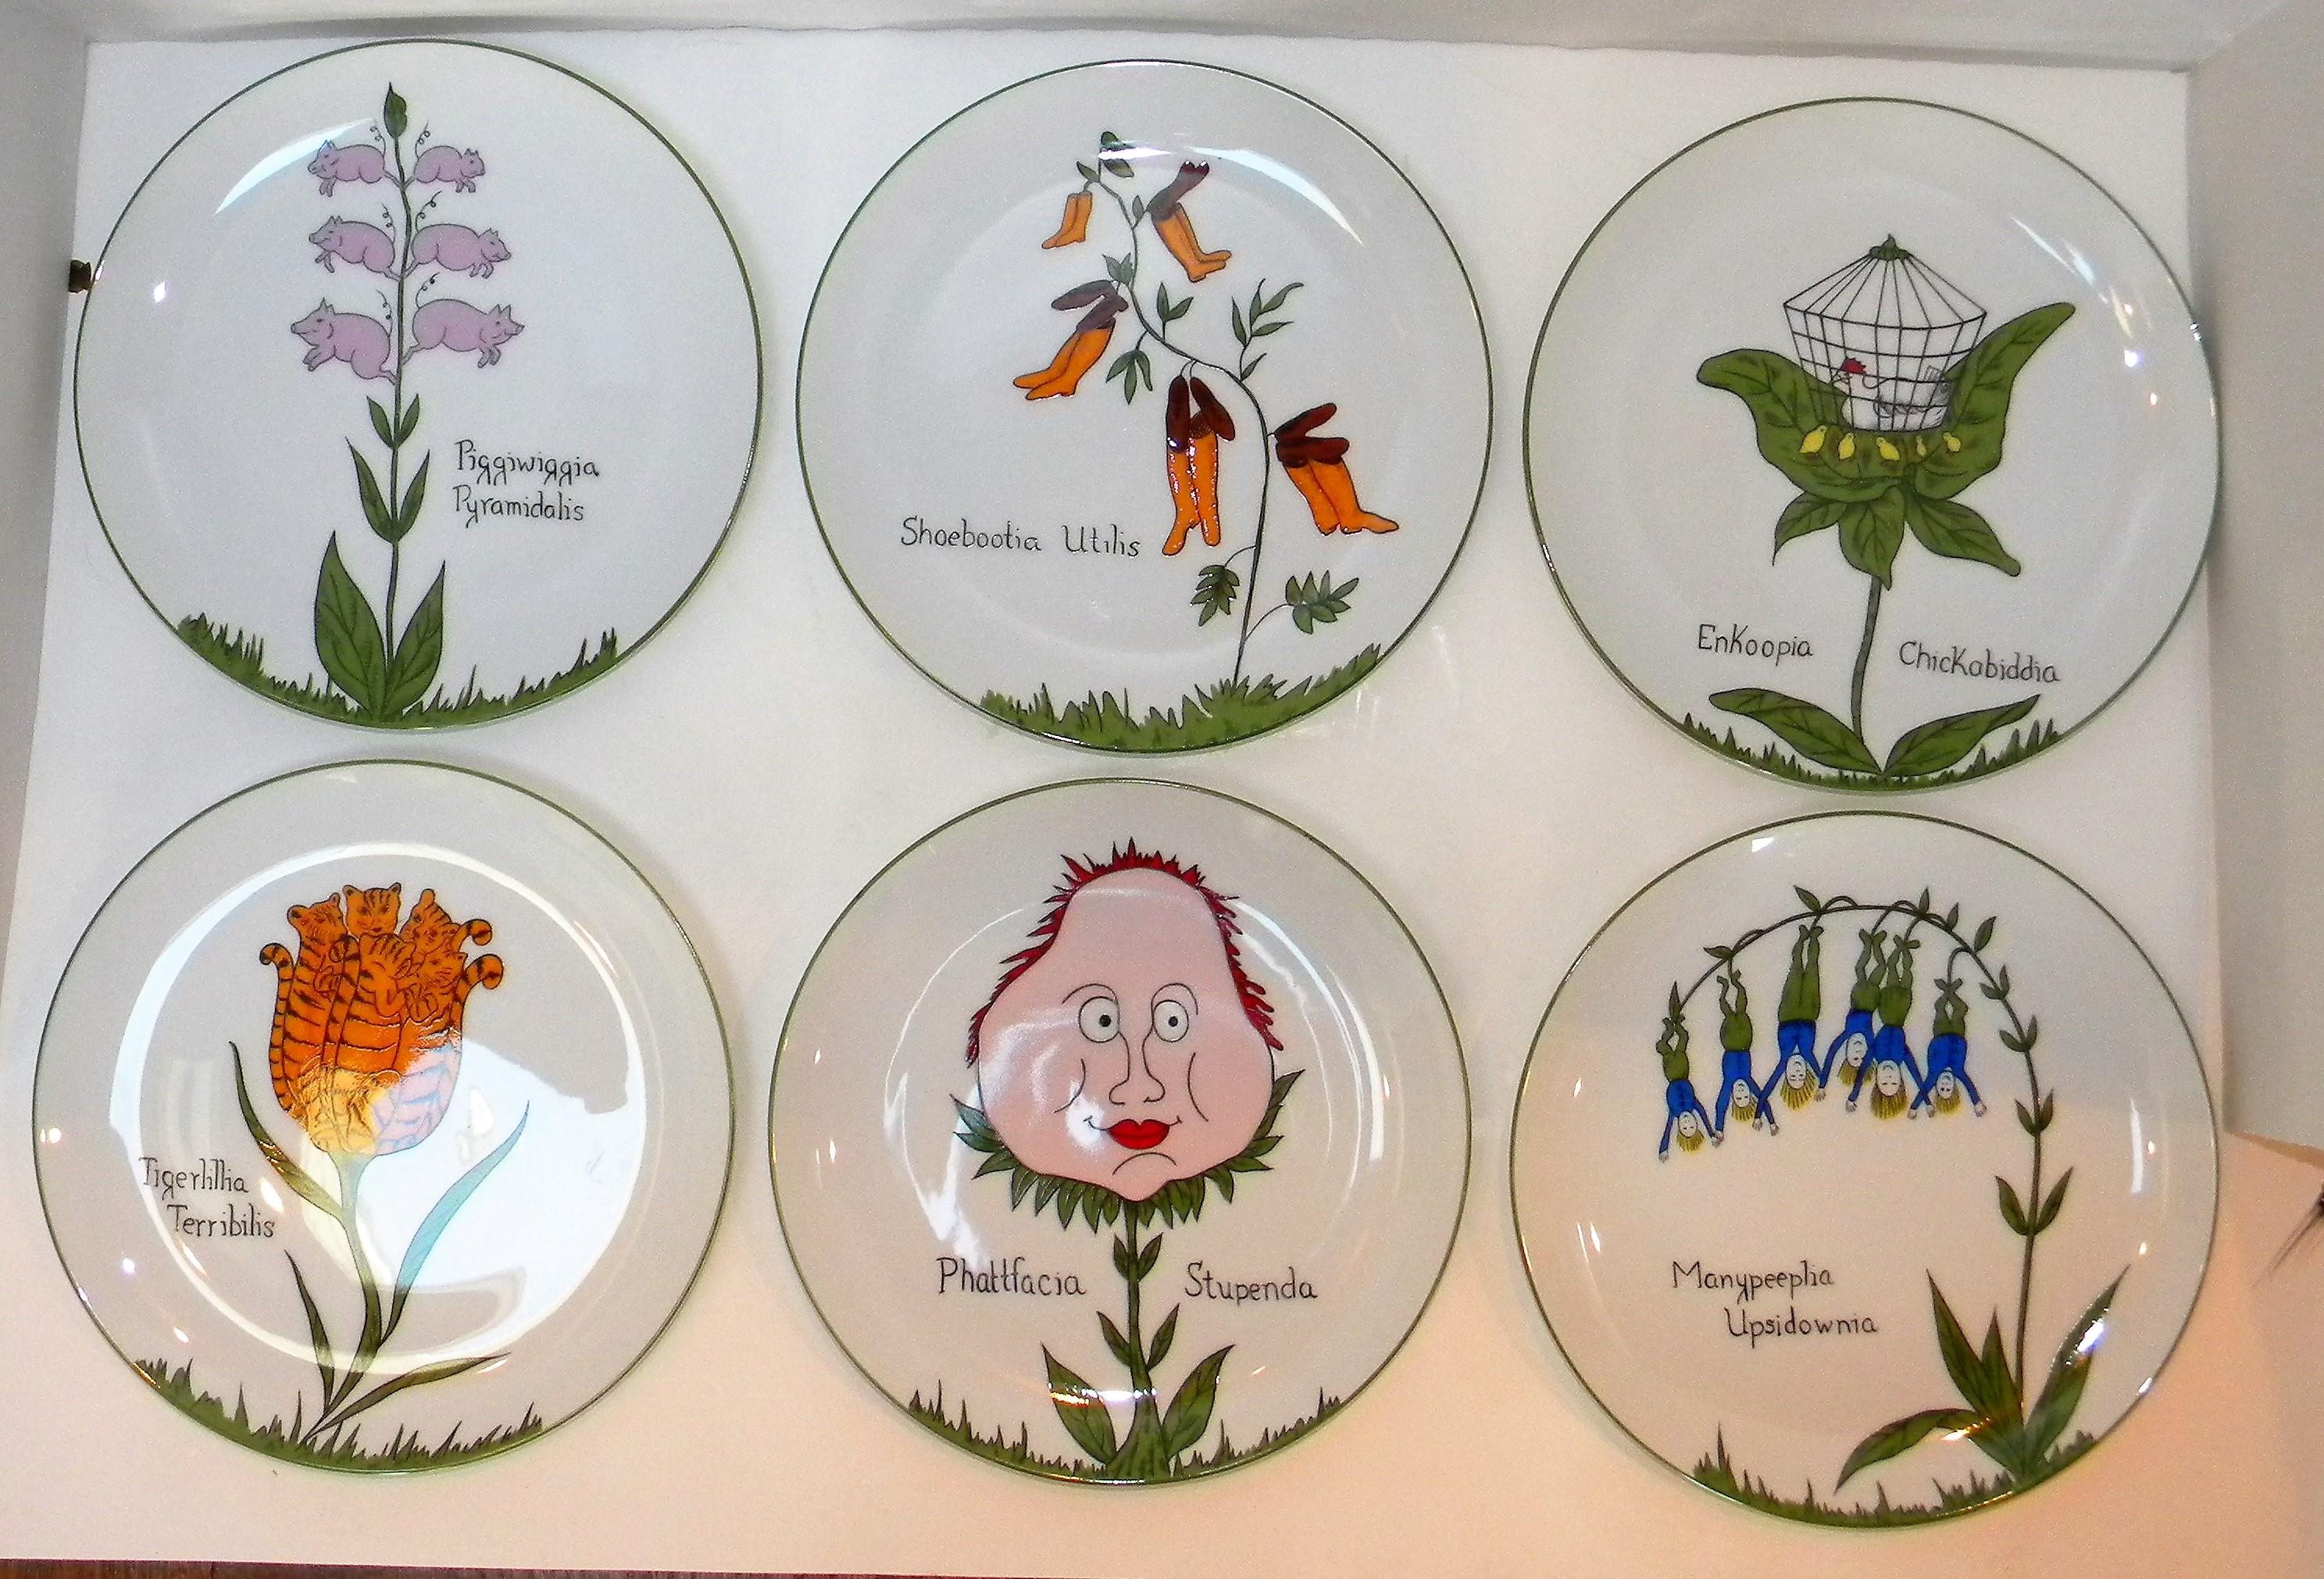 Scully and Scully Whimsical Plates - Image 2 of 9  sc 1 st  Chairish & Scully and Scully Whimsical Plates | Chairish